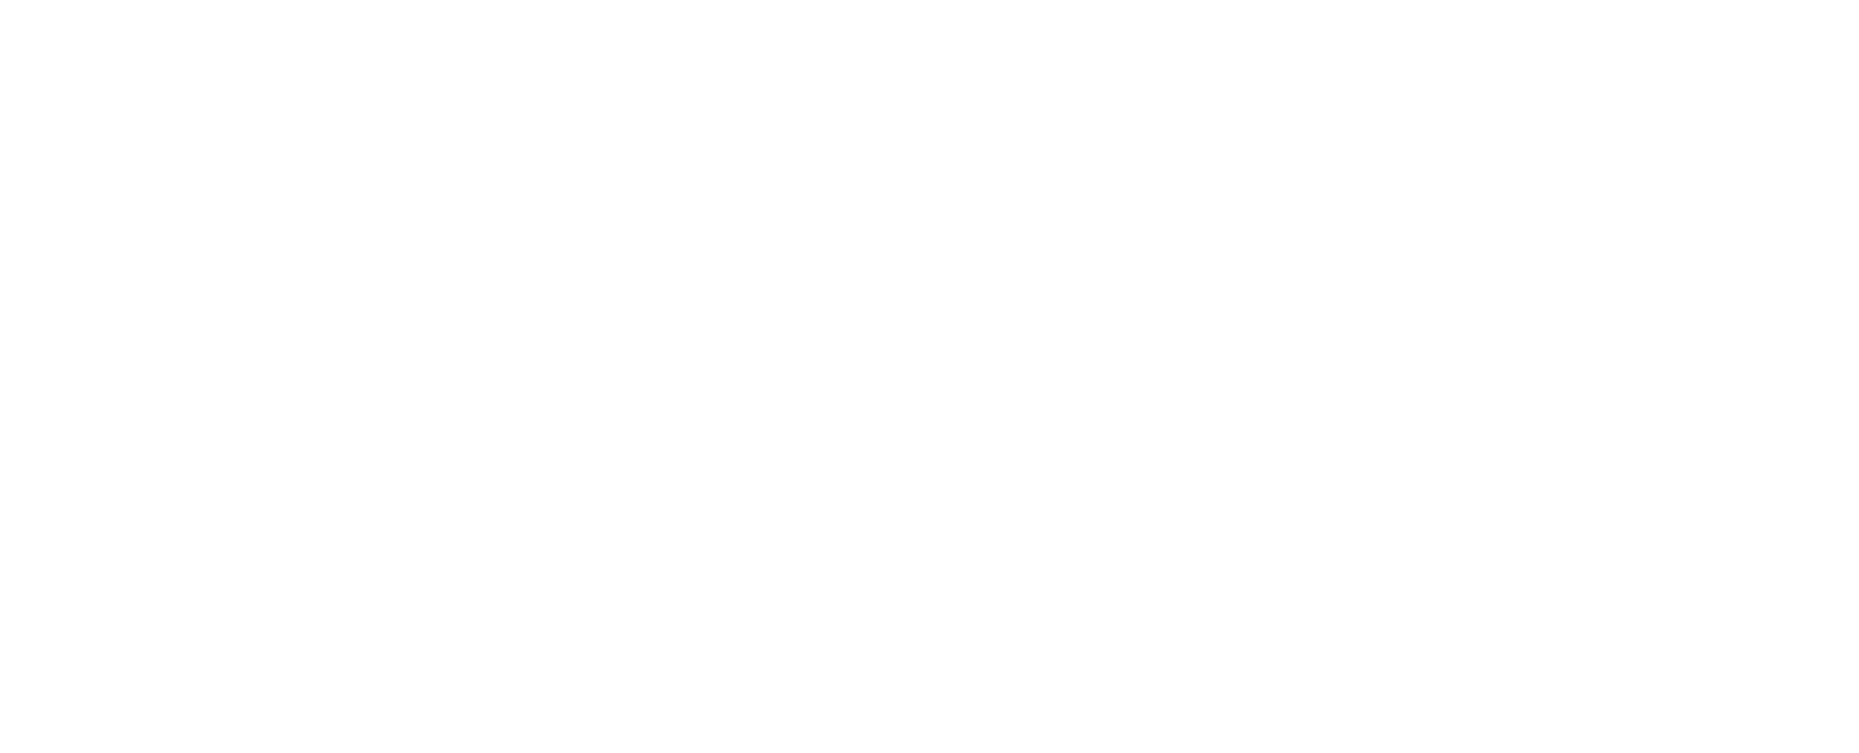 Terms & Conditions | World Leasing Yearbook